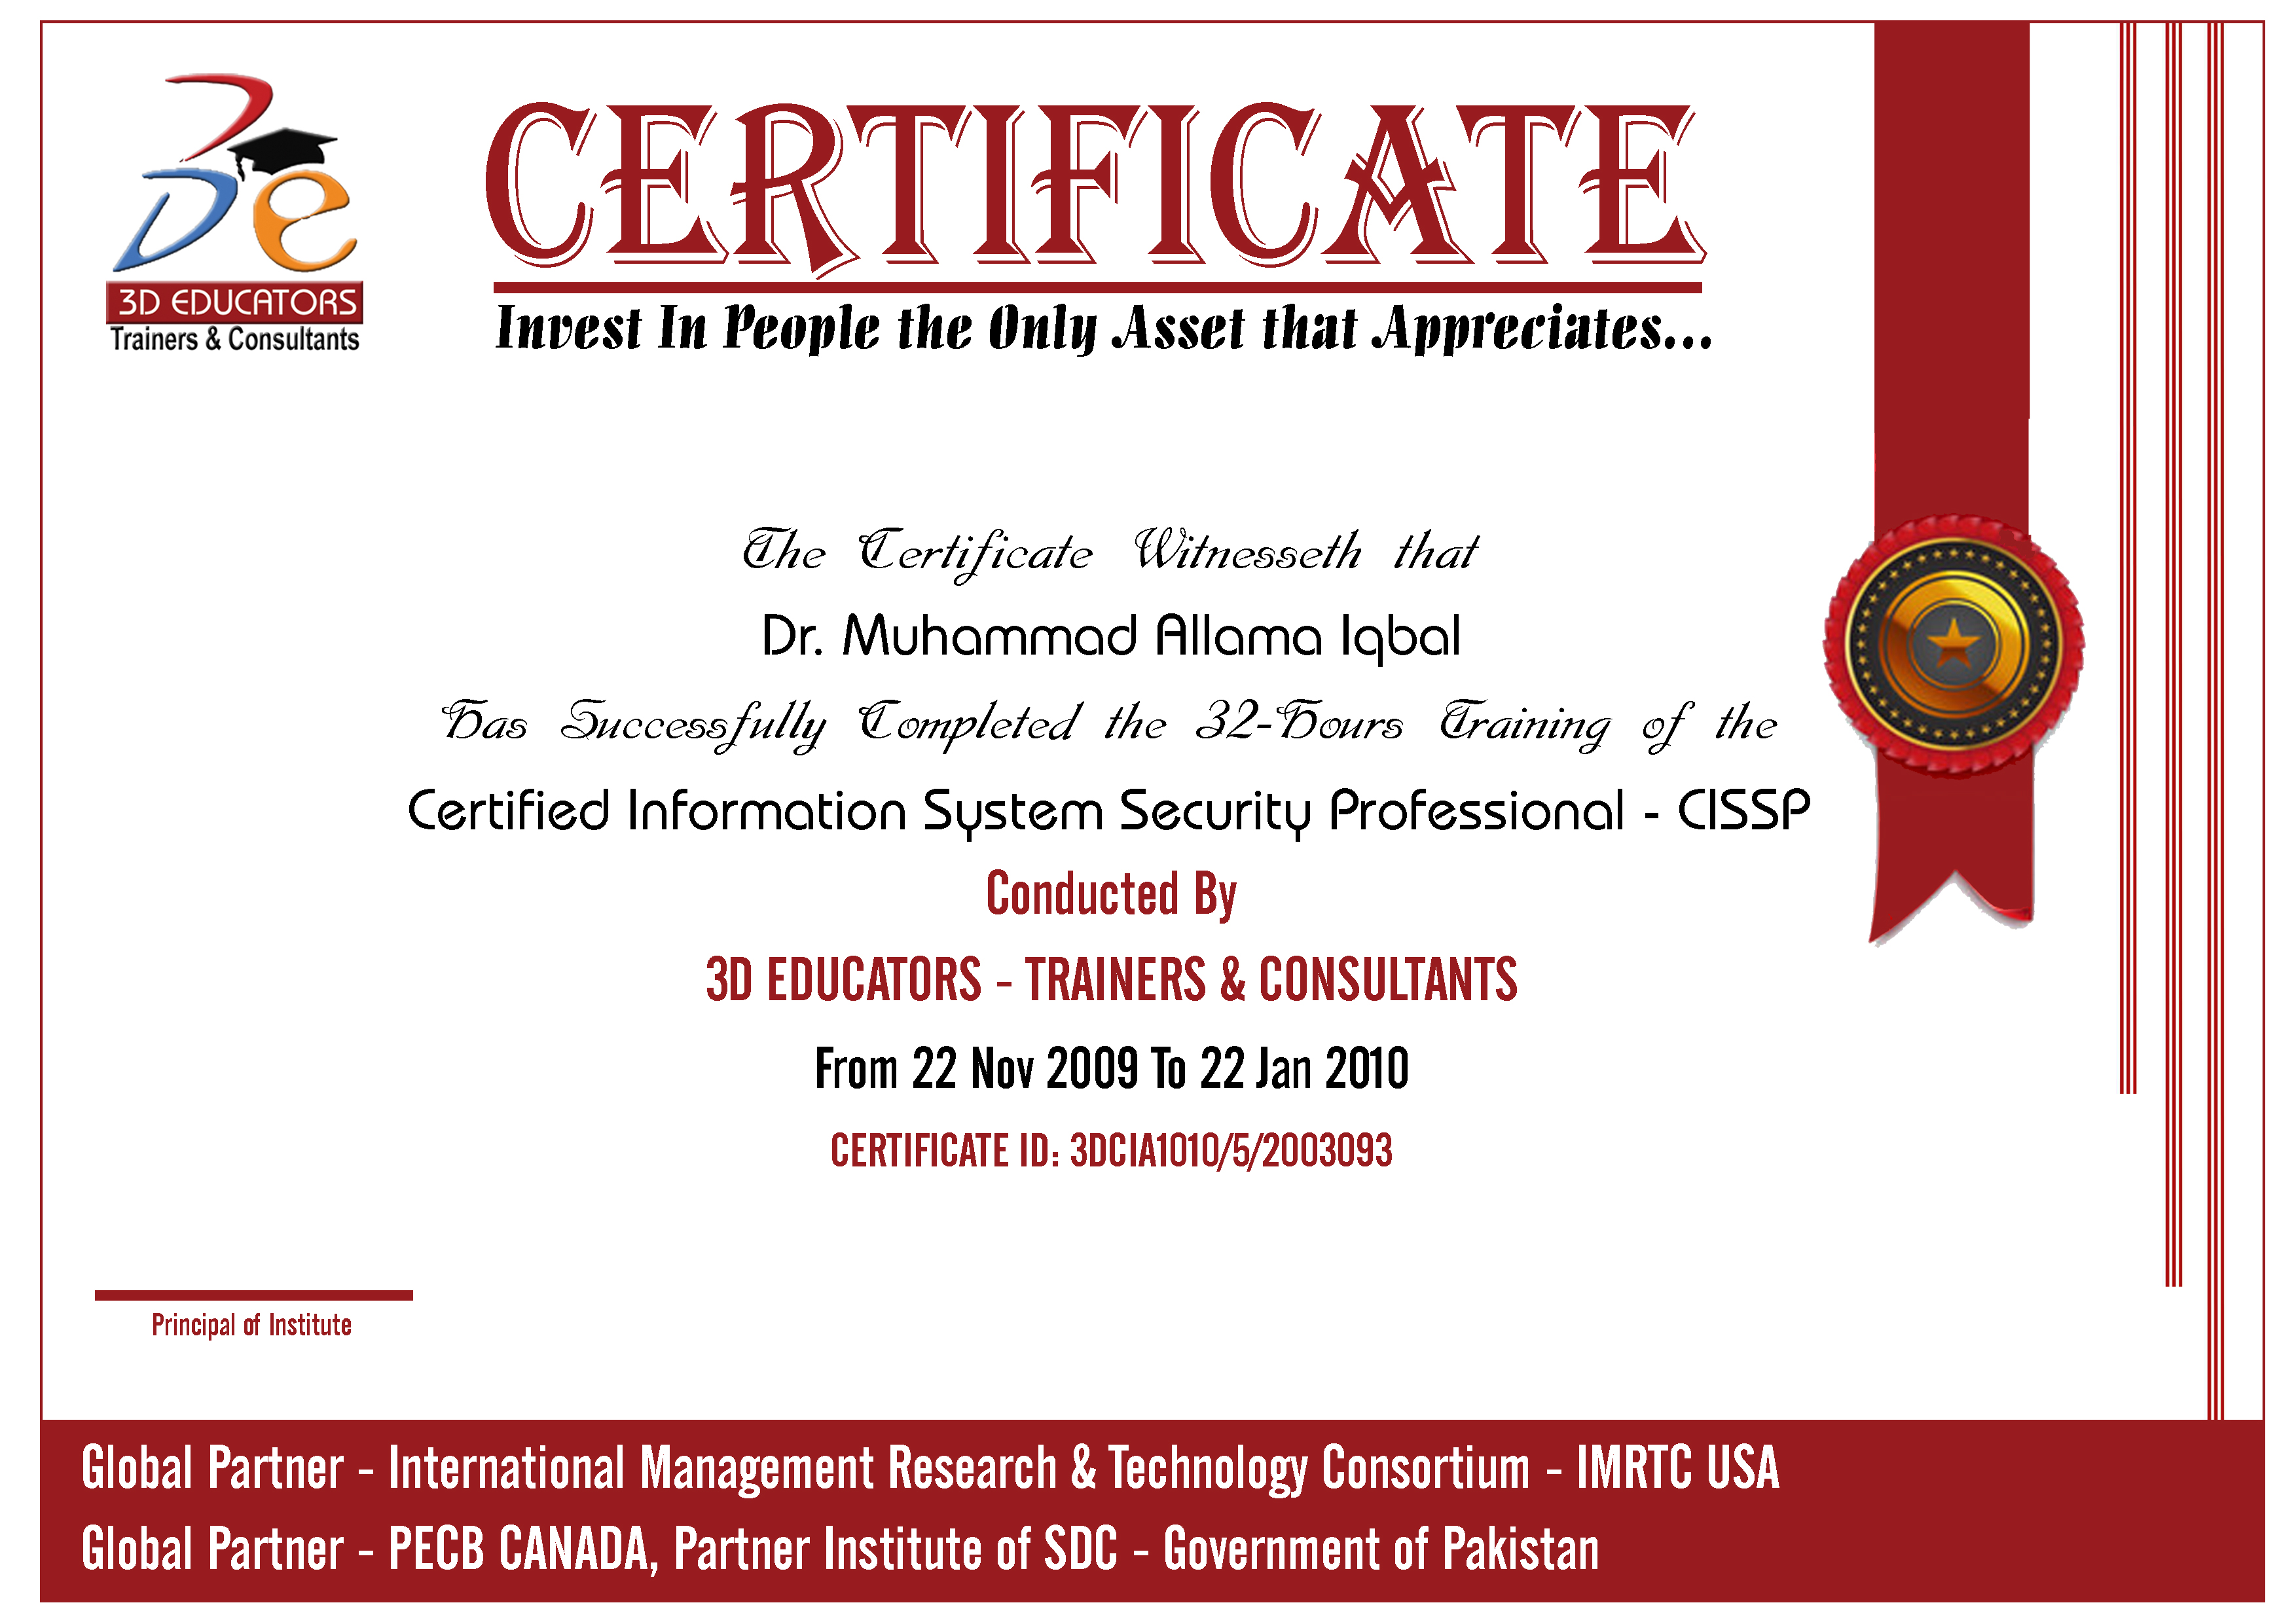 Certified Information System Security Professional - CISSP